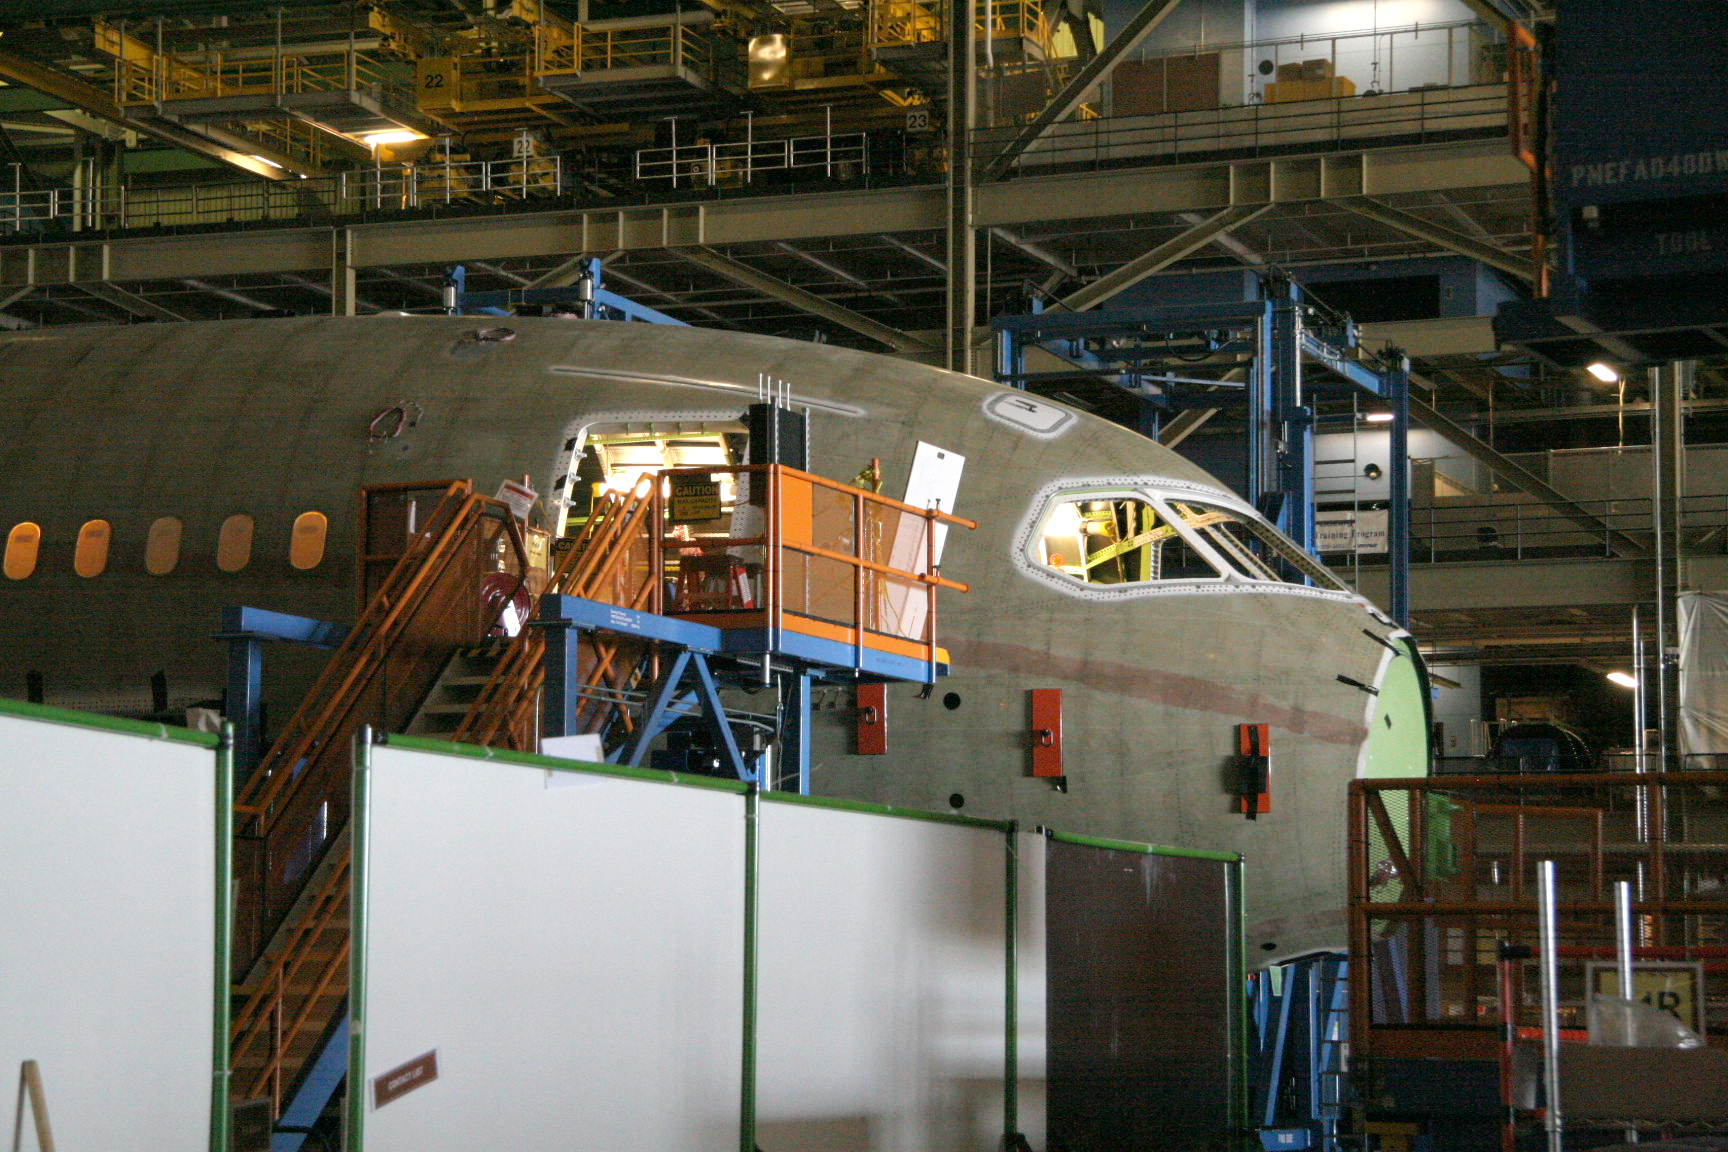 Assembly of Section 41 of a Boeing 787 Dreamliner